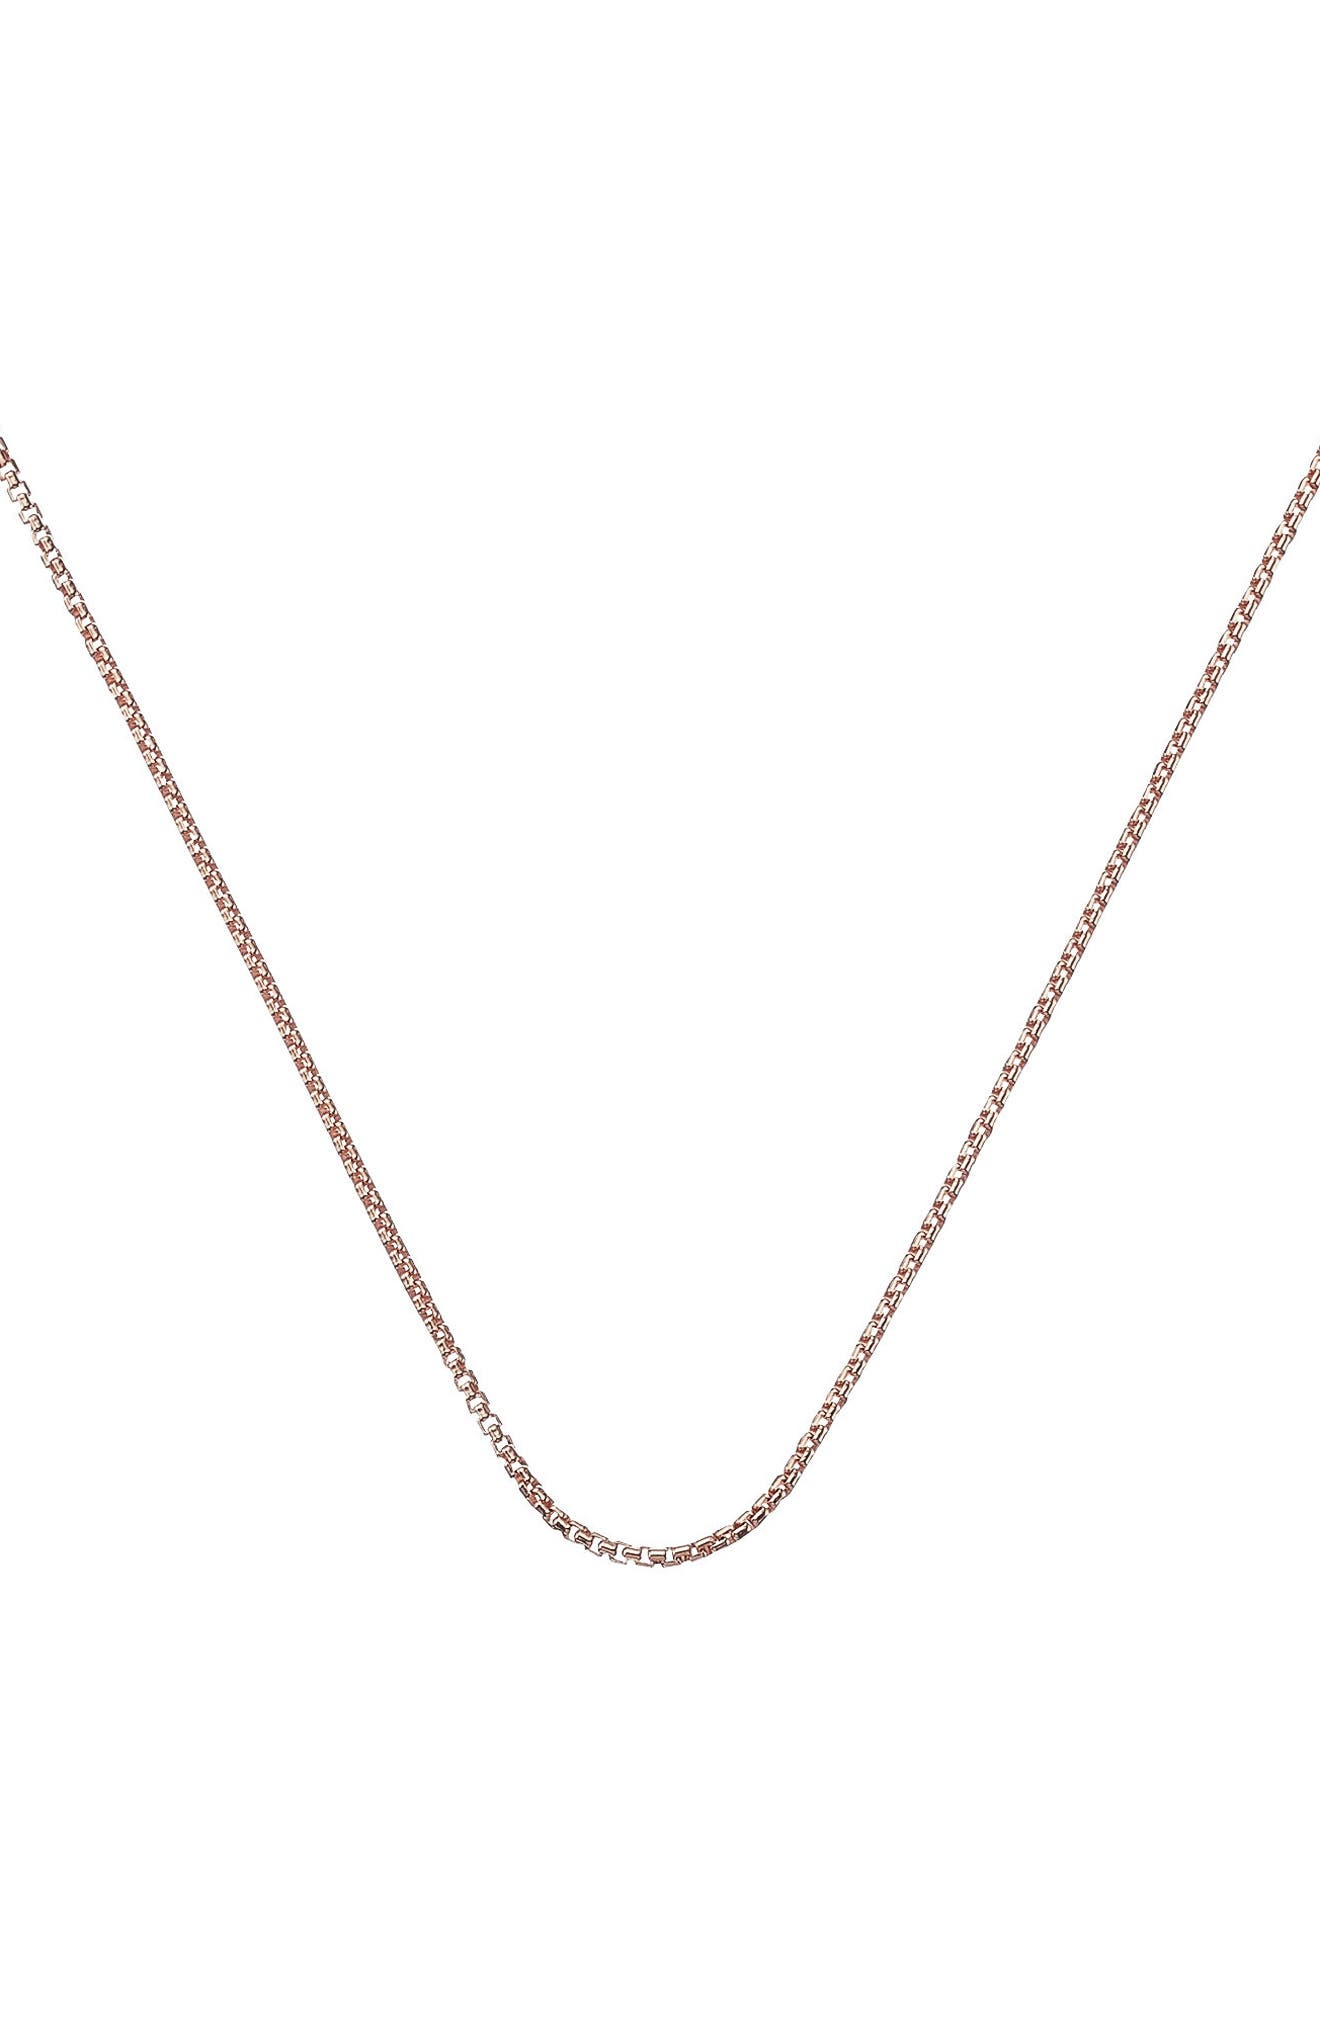 18-Inch Box Chain,                         Main,                         color, Rose Gold